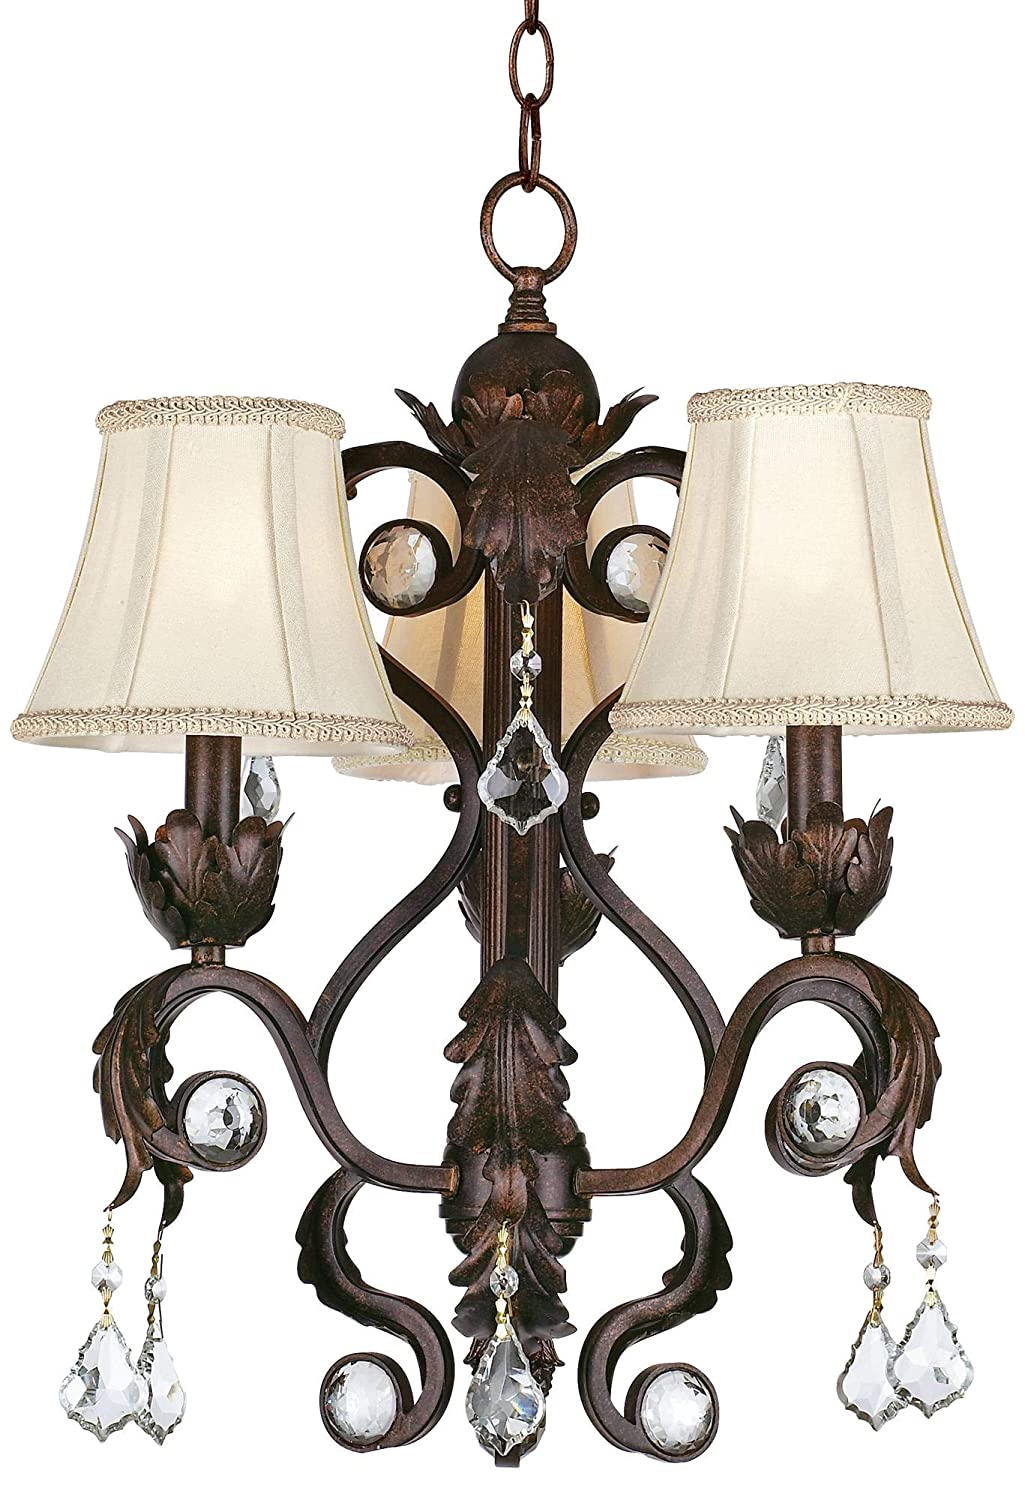 Kathy Ireland Ramas de Luces Bronze 17 Wide Chandelier